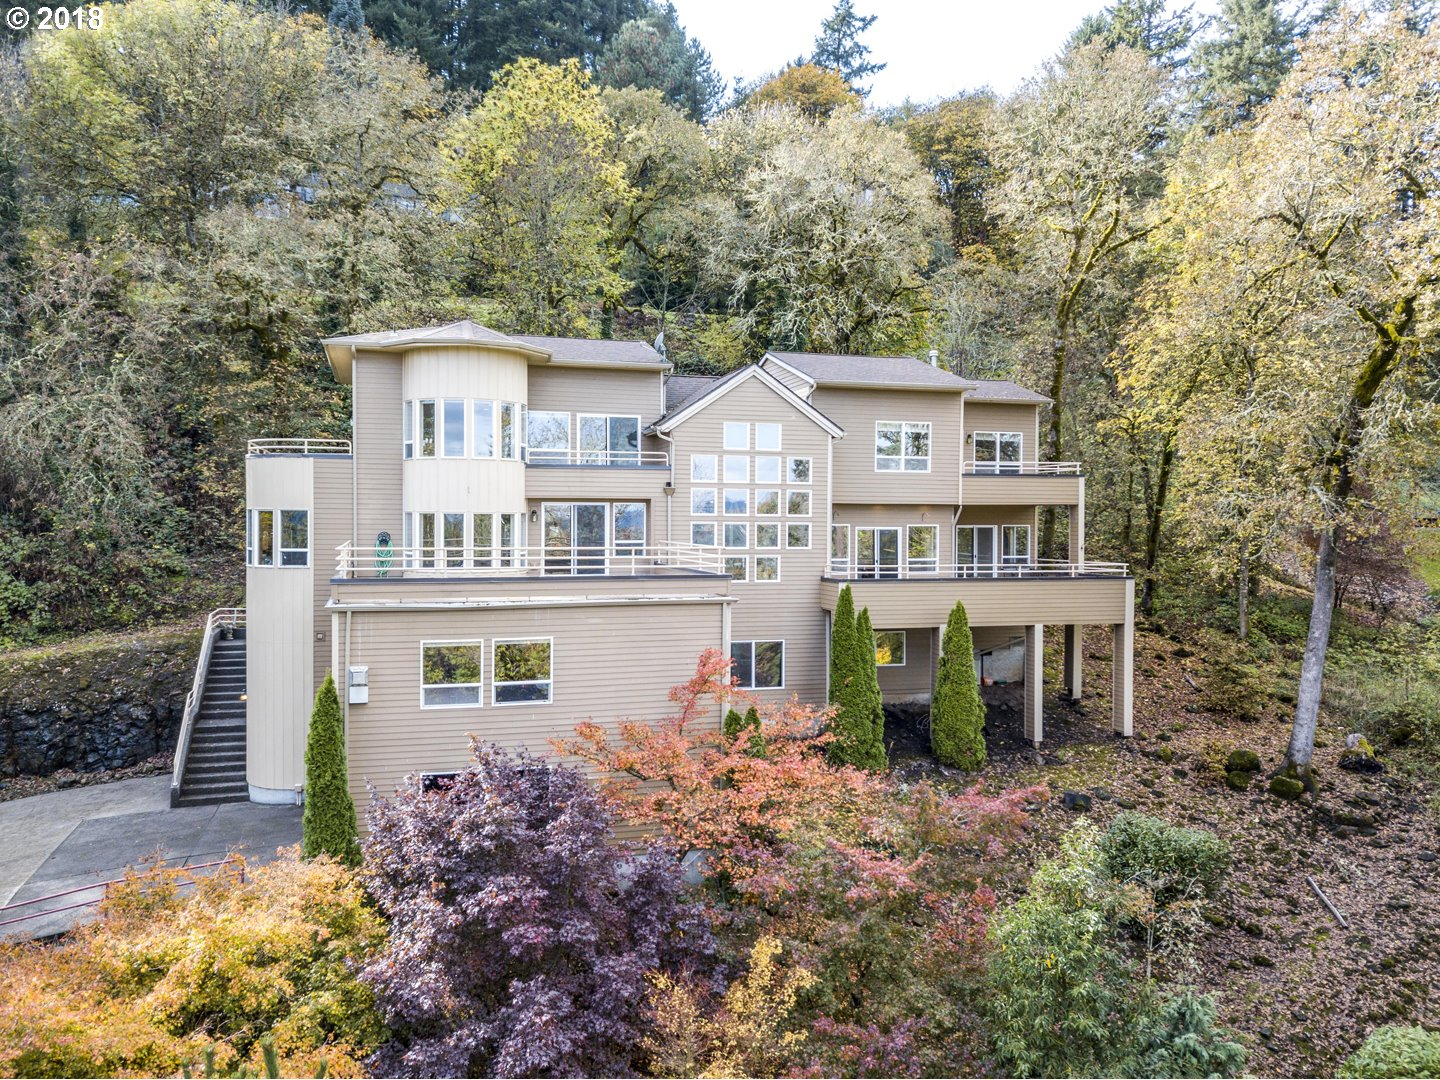 Fantastic mountain view contemporary on private acre+ sits in the heart of Bolton neighborhood.3 levels,5 decks, stunning master suite,2nd ensuite up.Fresh interior w/bamboo,travertine,new paint & carpet.Open kitchen/great-room flows to formal DR & LR. Deck access from almost every room. Main level office,bedroom,bath w/entrance- home business? Huge lower level media/game room. Plus33x60 studio w/full bath,gas heat.